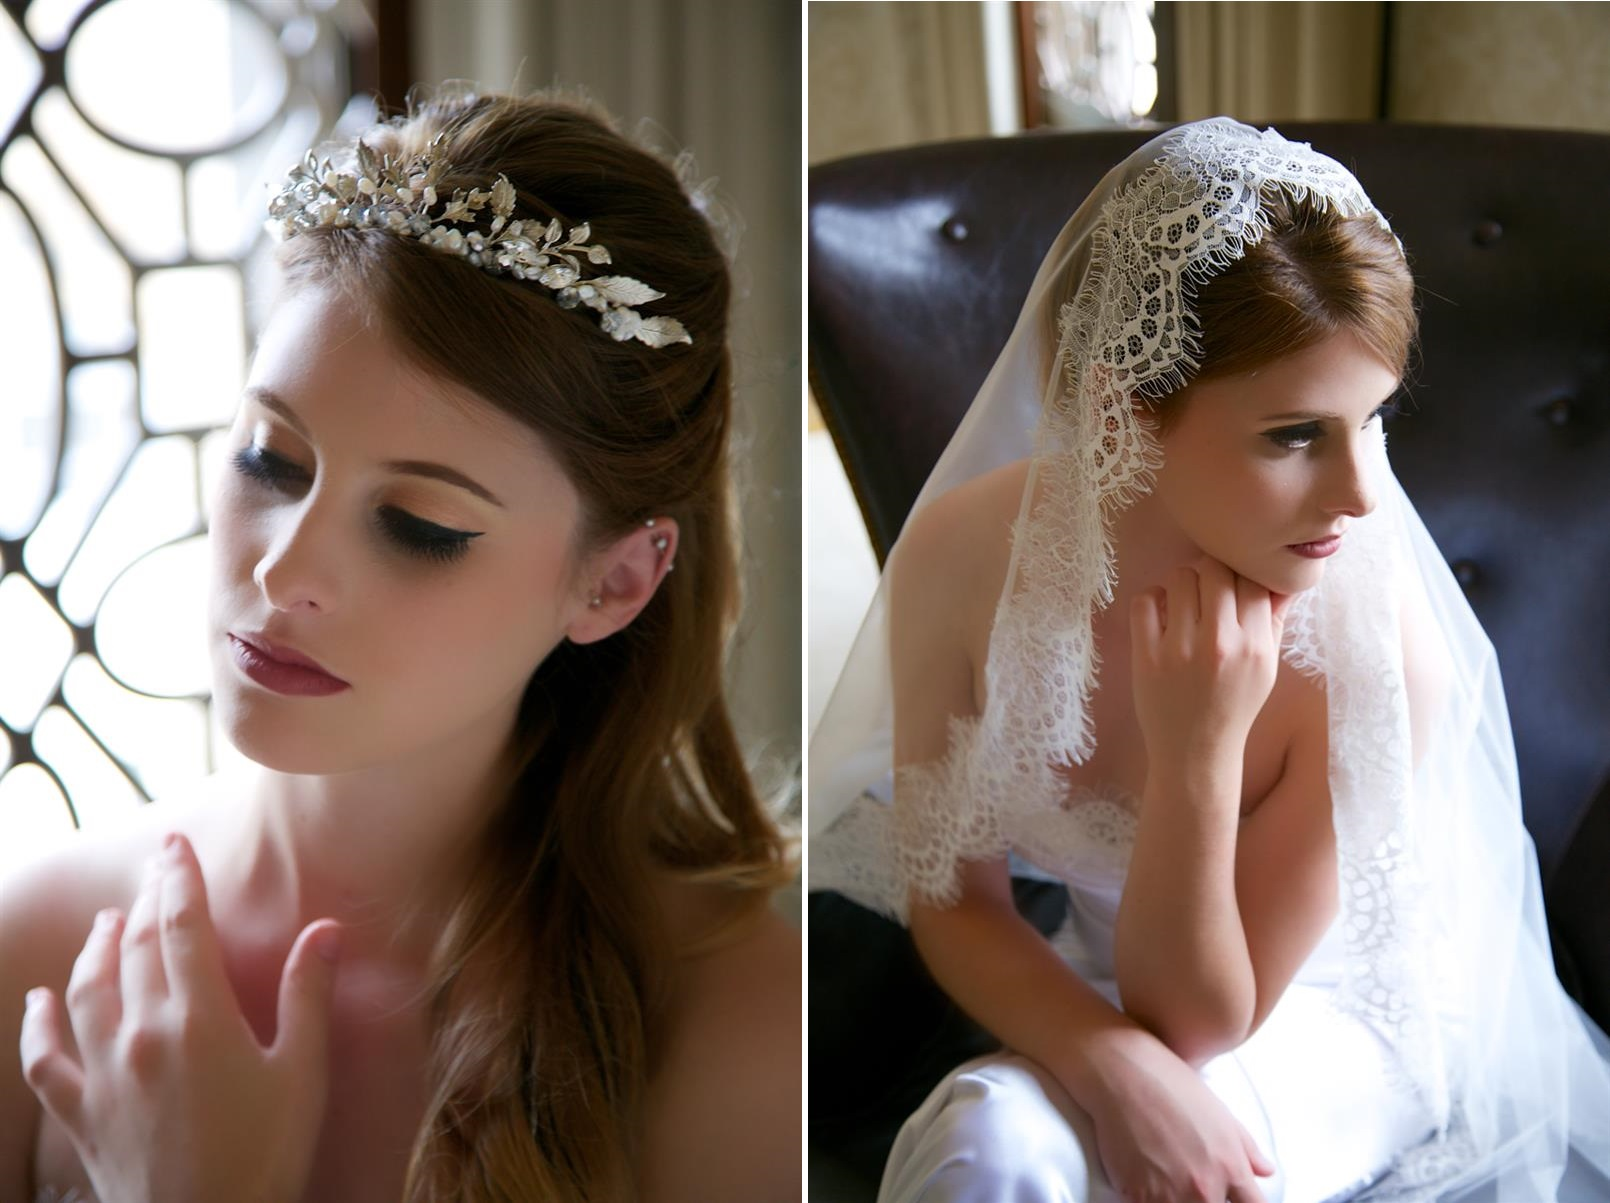 Glamorous Bridal Headpieces from Gilded Shadows - Silver Crown